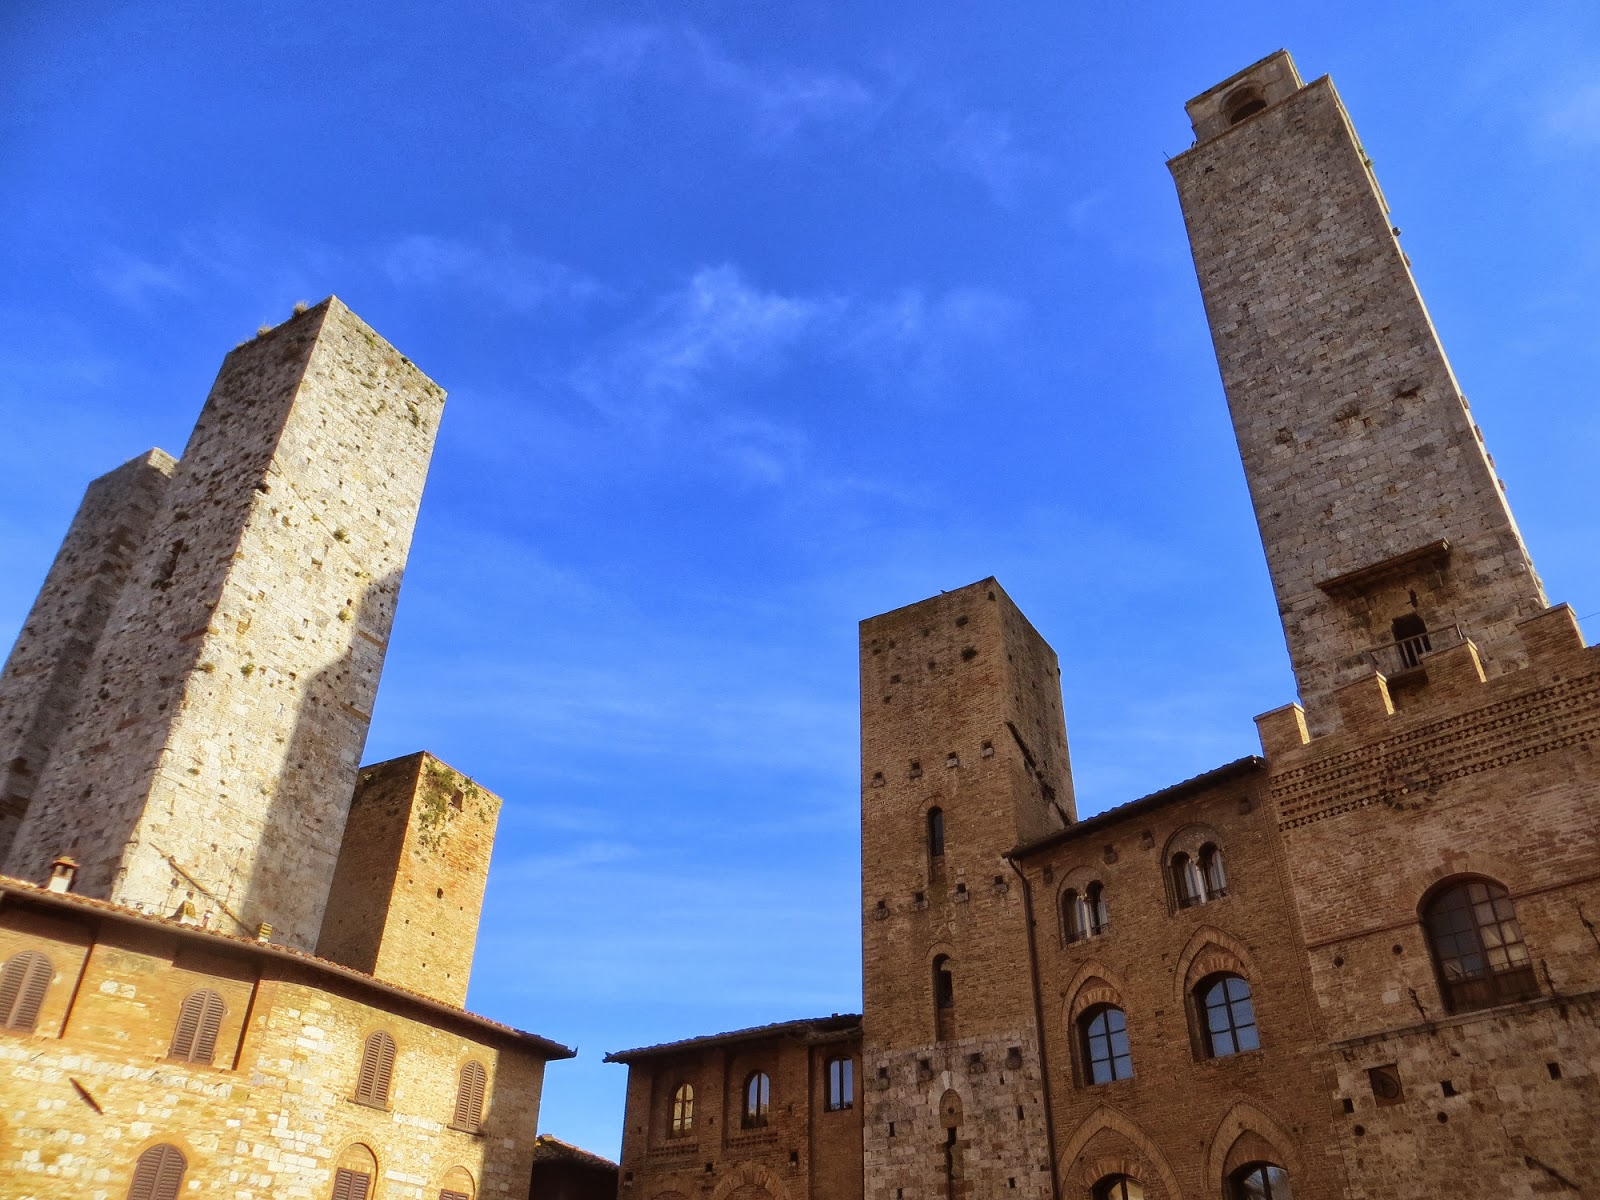 Towers of San Gimignano, Italy